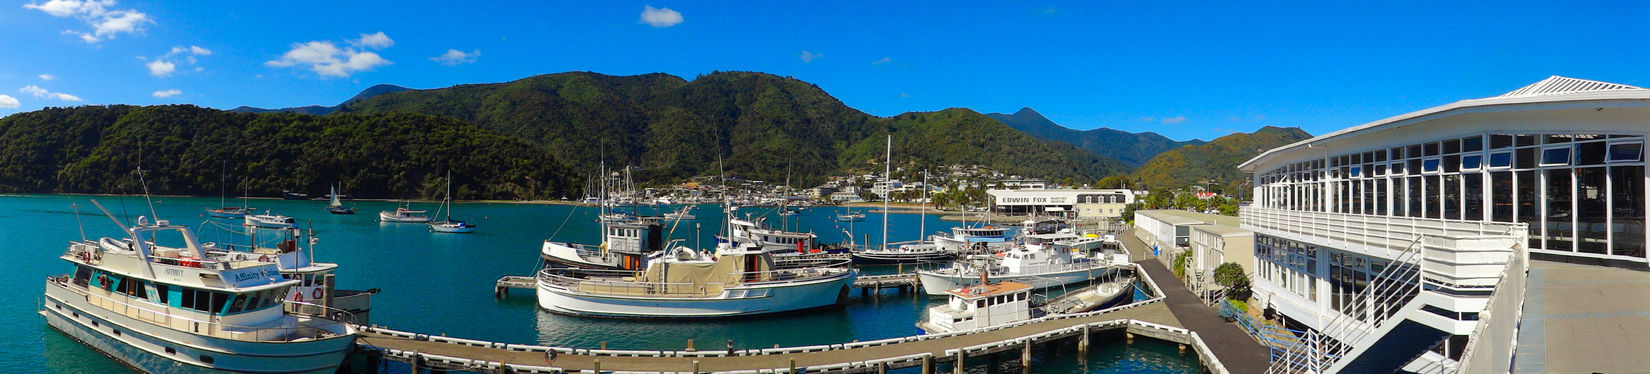 New Zealand Picton  Panorama Port The Great Outdoors - 2015 EyeEm Awards